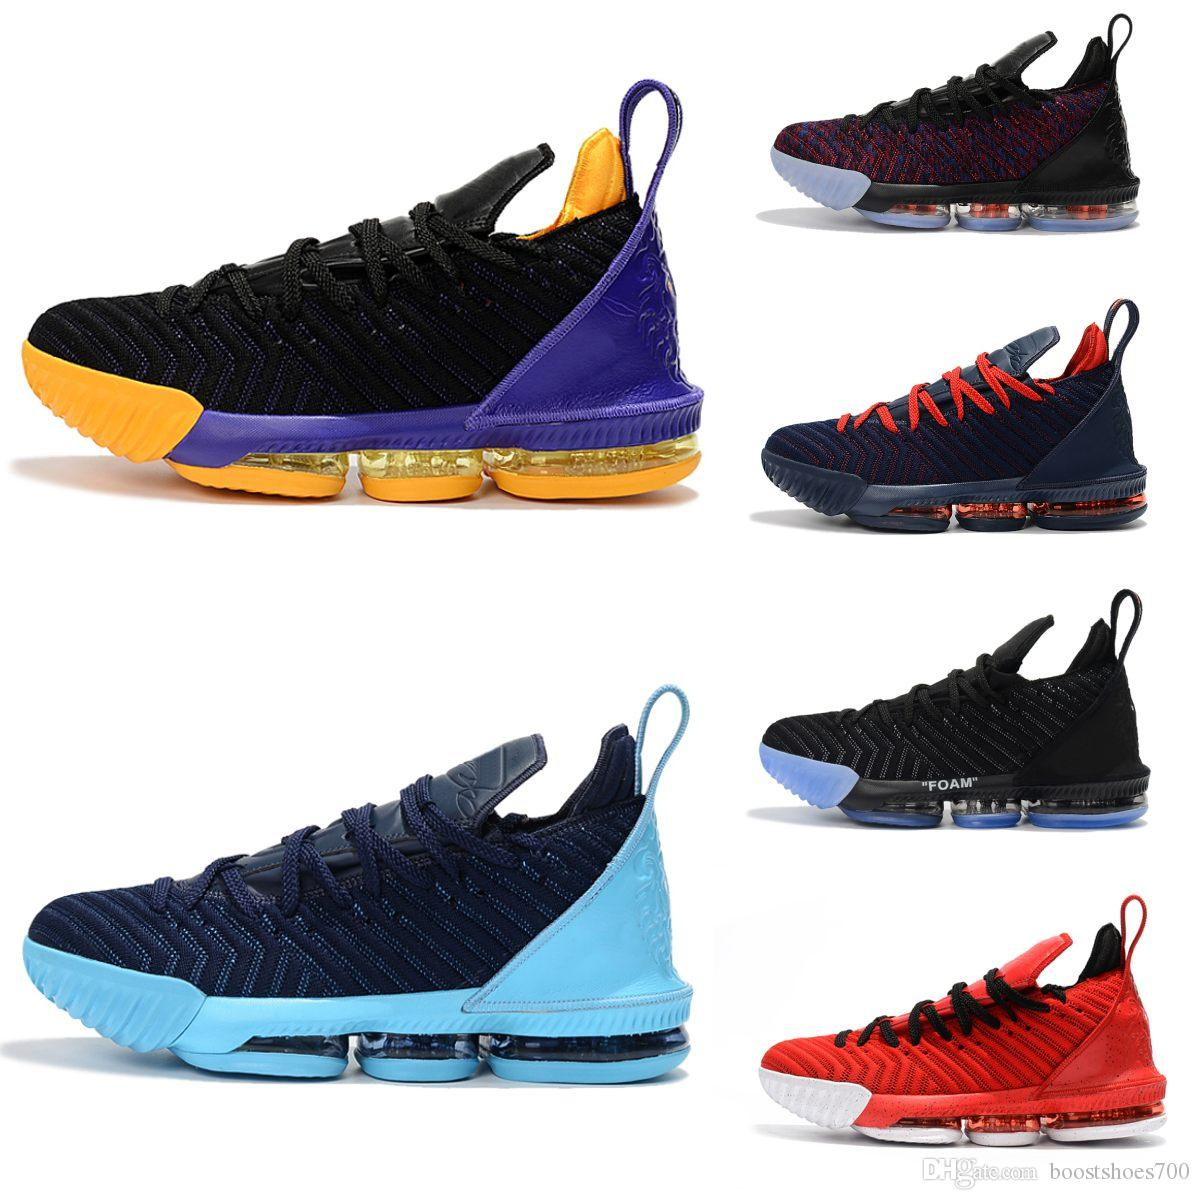 pretty nice dc8d2 5d50b HQ Mens 16 Basketball Shoes 16s Advanced Knit Gold Black Dark Grey Blue Mens  Sneakers Fashion 15 Basketball Tranning Boots Size 40 46 Sports Shoes  Online ...